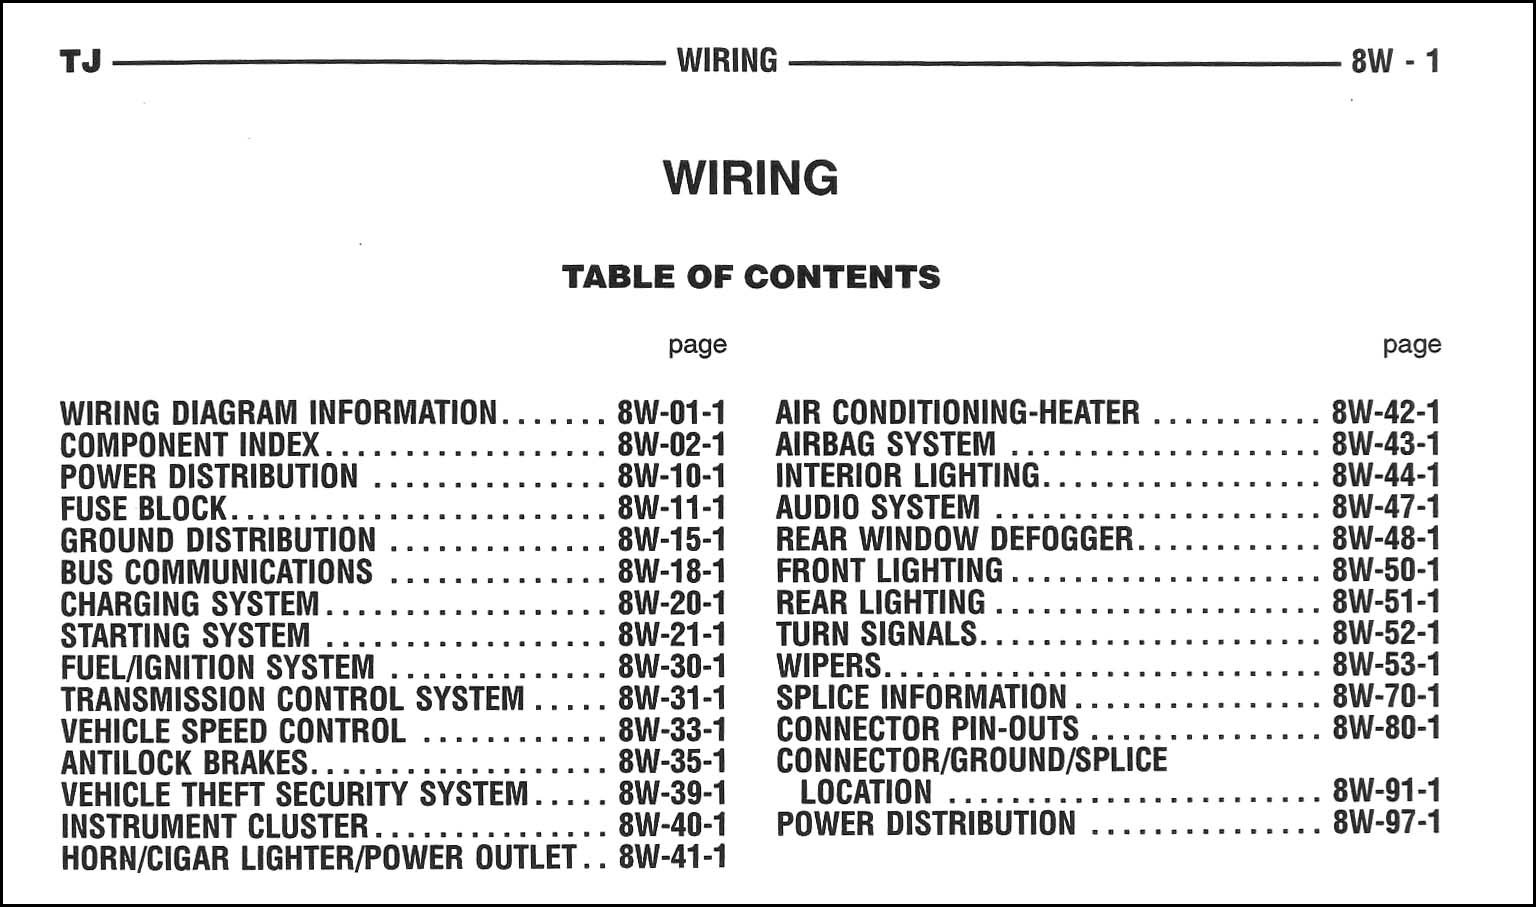 2005 Jeep Wrangler Wiring Diagram Manual Original · Table of Contents Page